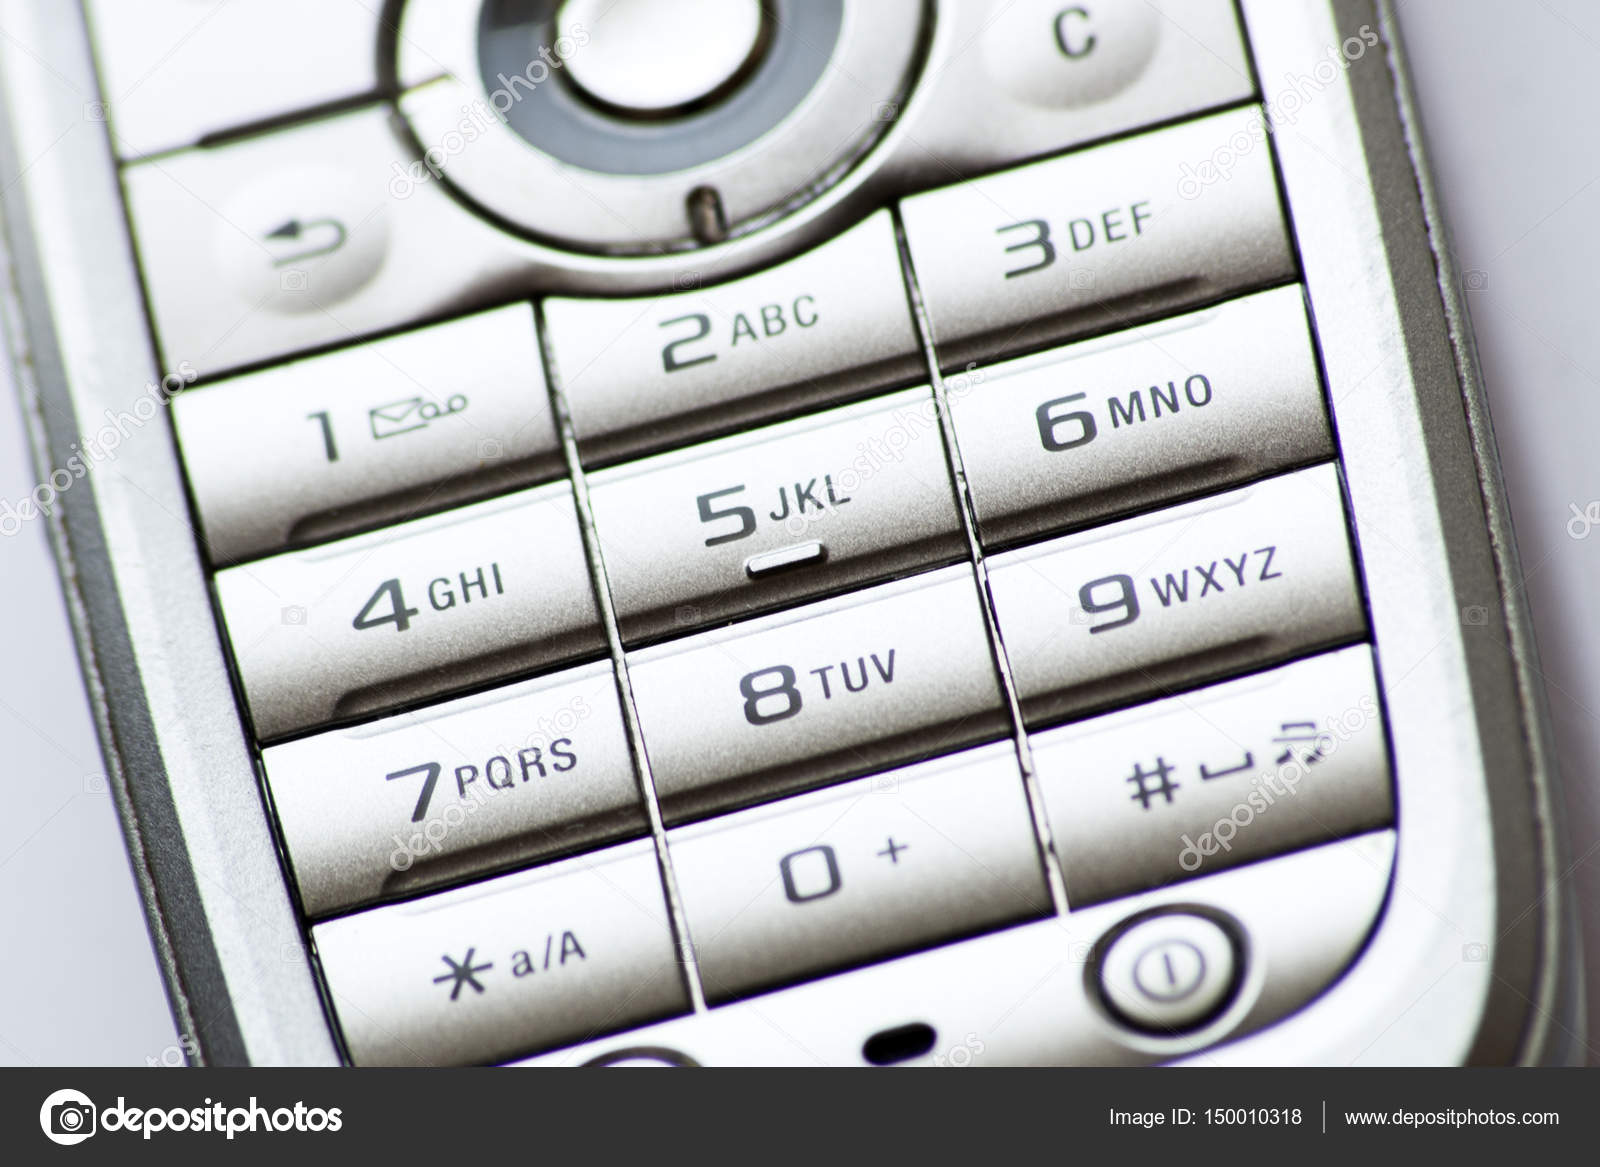 Old cell phone numeric keyboard — Stock Photo © marcinm111 #150010318